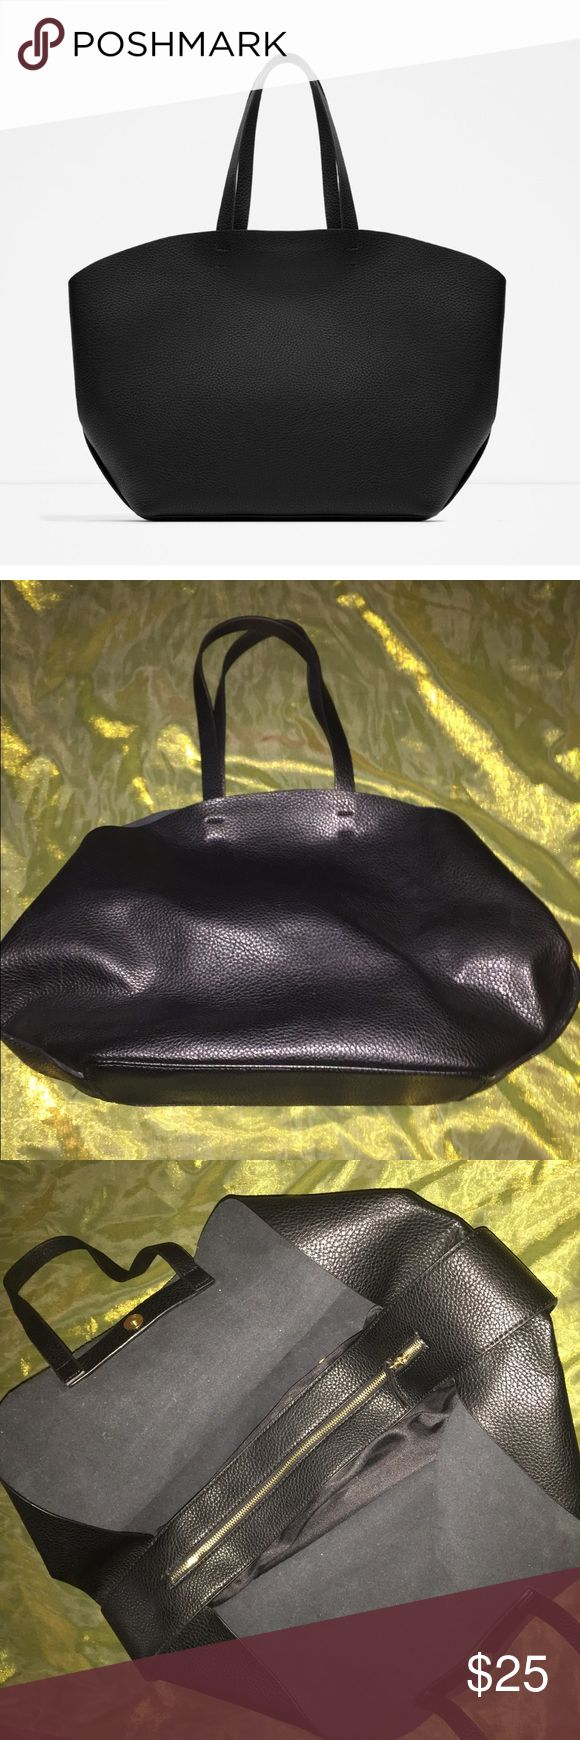 Zara Contrasting Tote Bag Black Zara Tote bag. Used a couple times but in great condition Zara Bags Totes